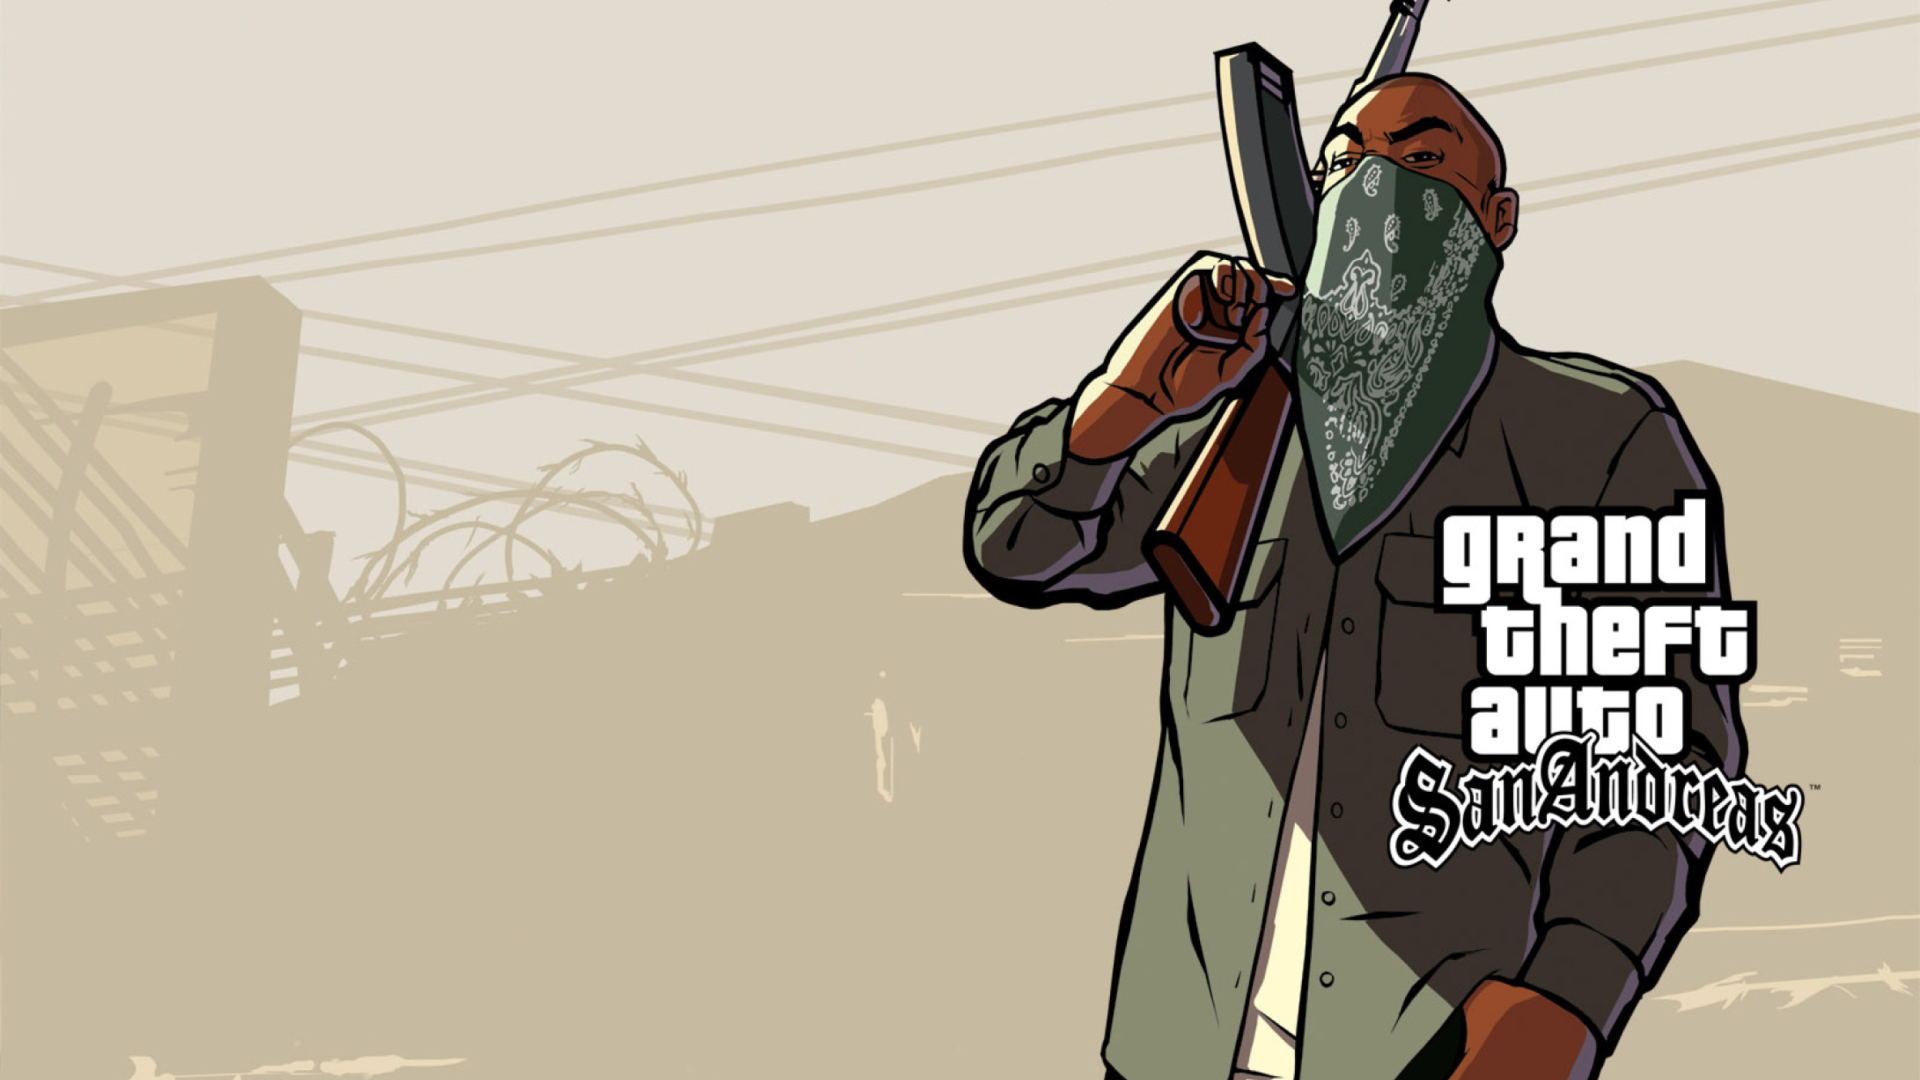 gta san andreas wallpaper HD